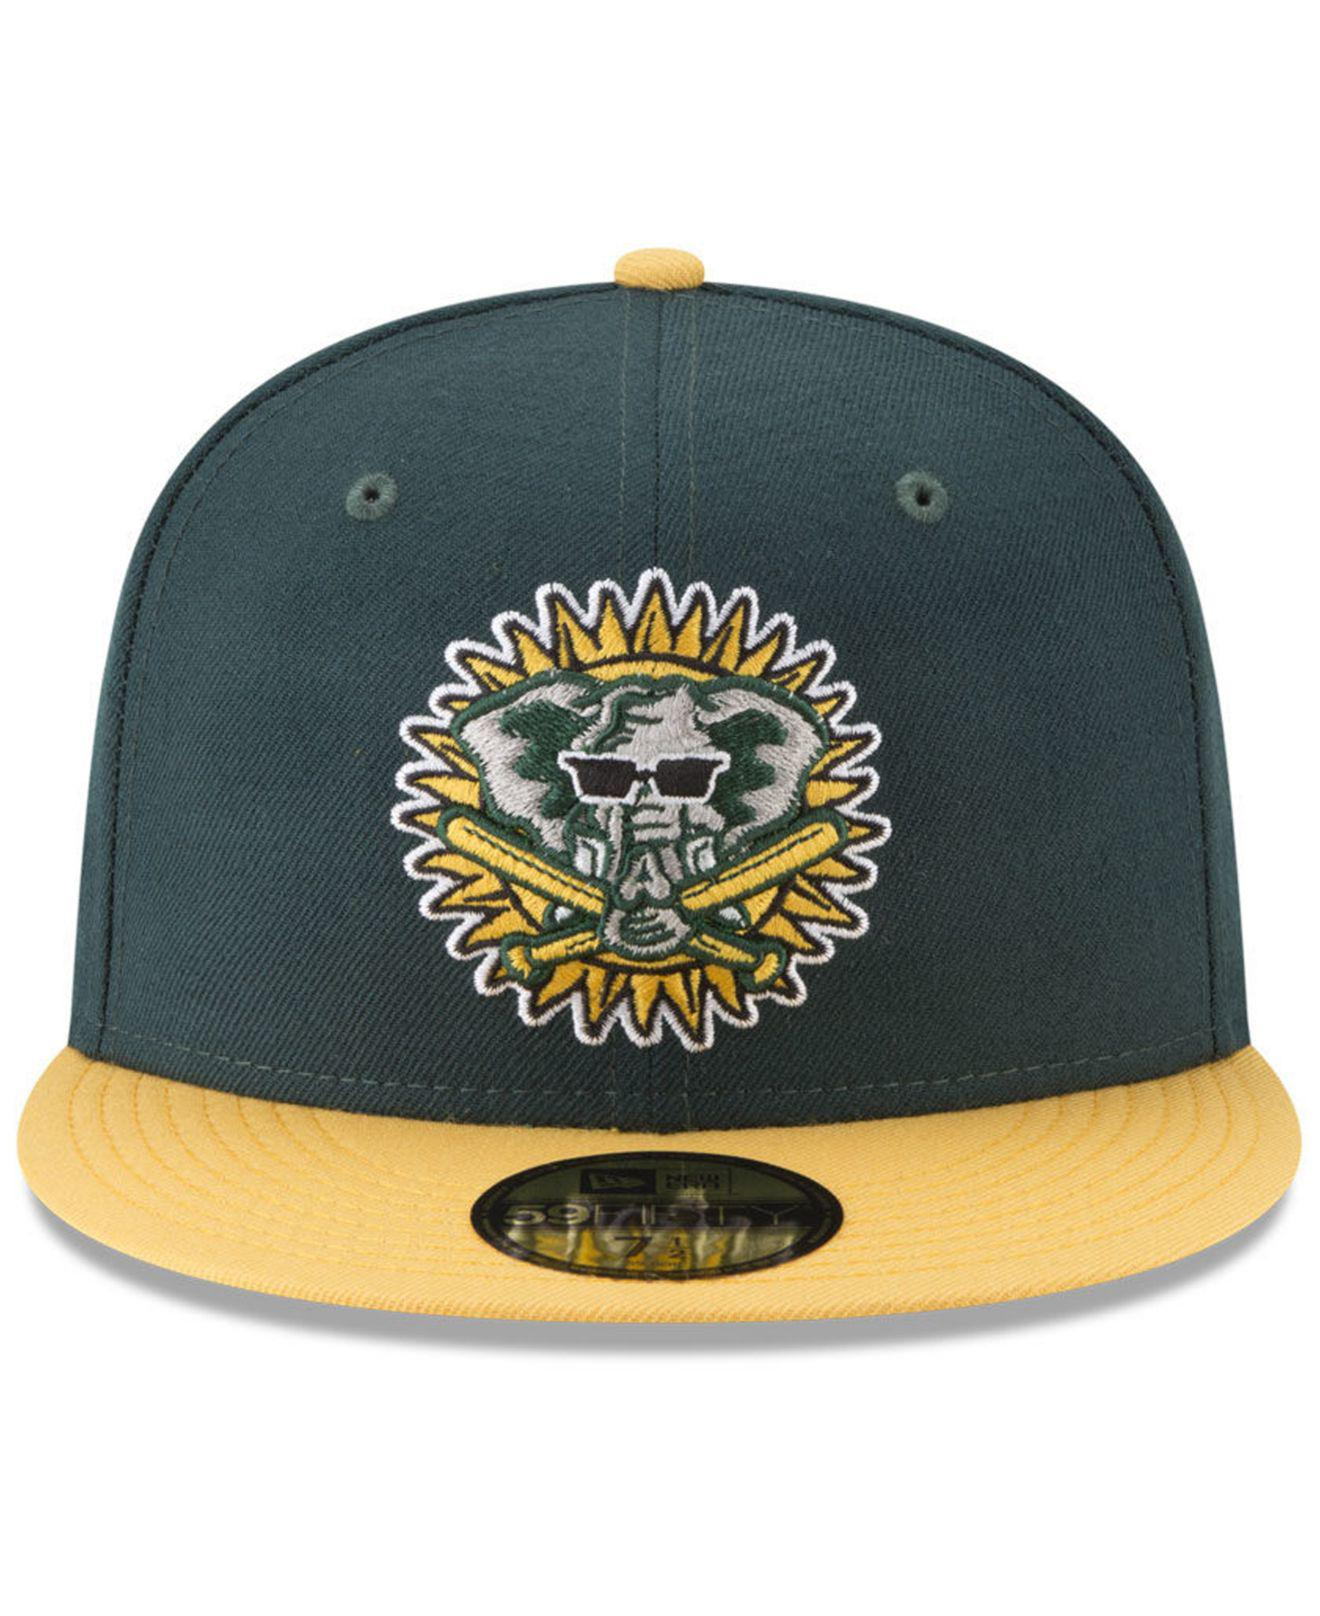 ac74ef2a7fe Lyst - Ktz Oakland Athletics Batting Practice Wool Flip 59fifty Fitted Cap  in Green for Men